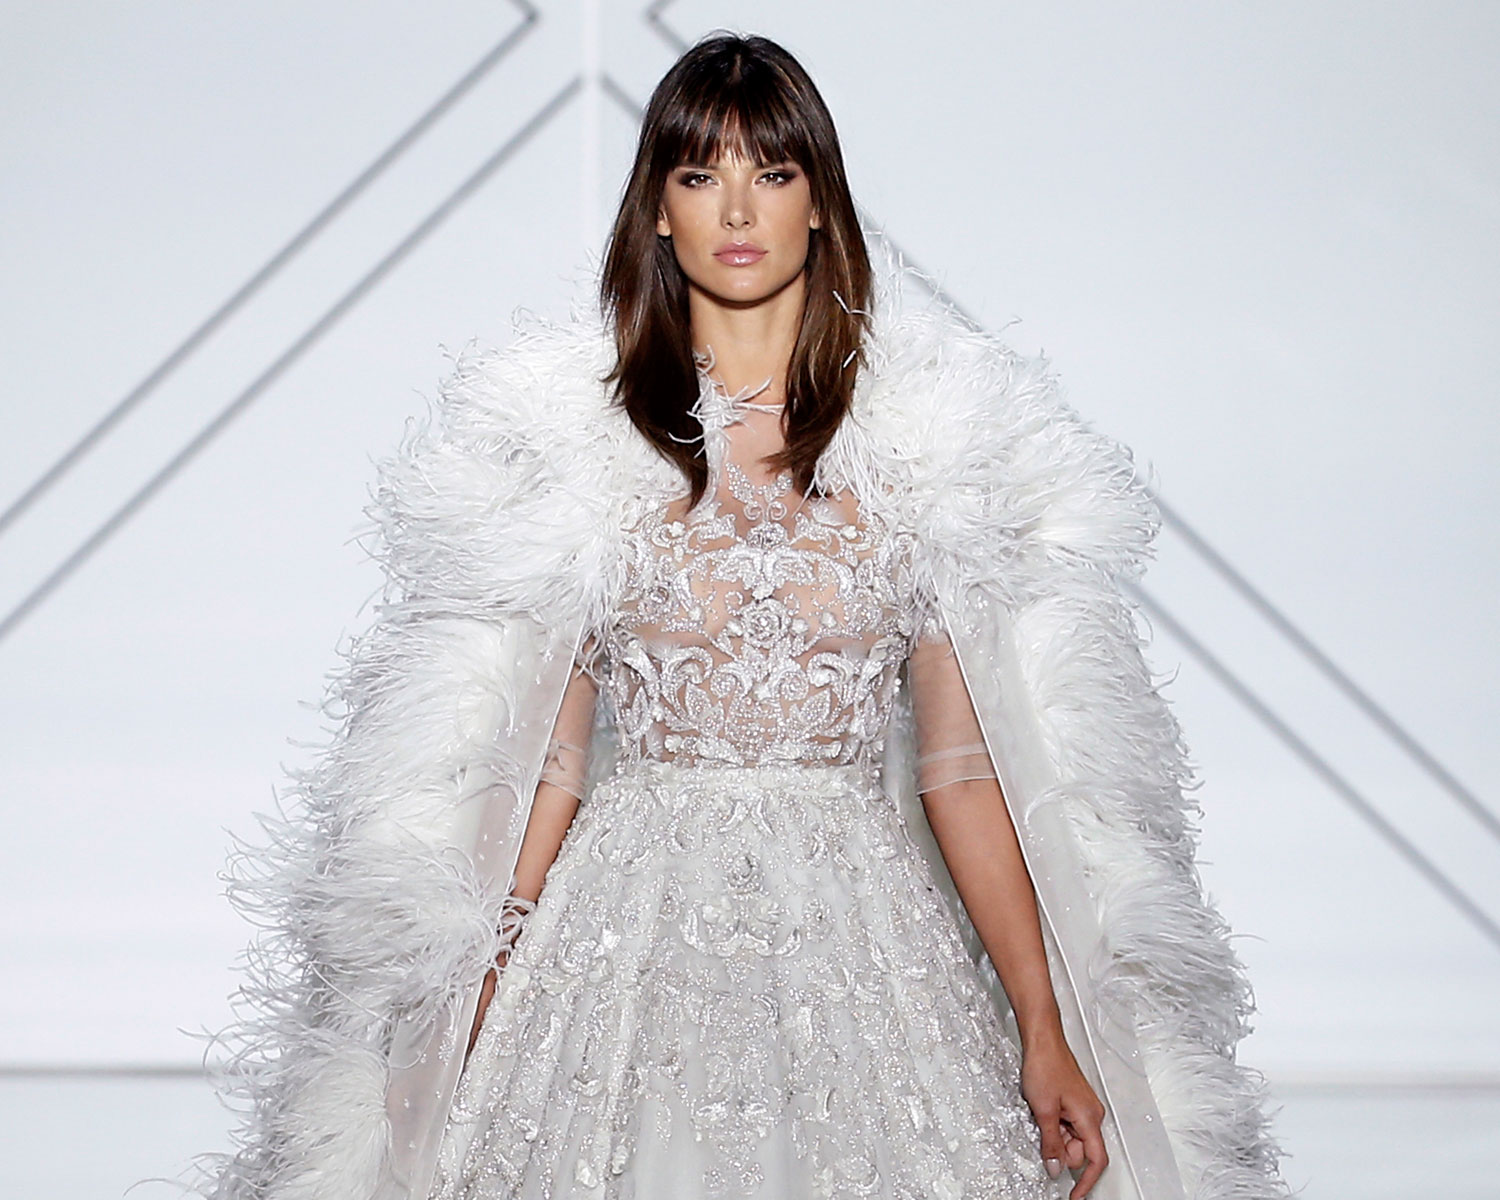 Alessandra Ambrosio Wows in Ralph & Russo Couture Wedding Dress